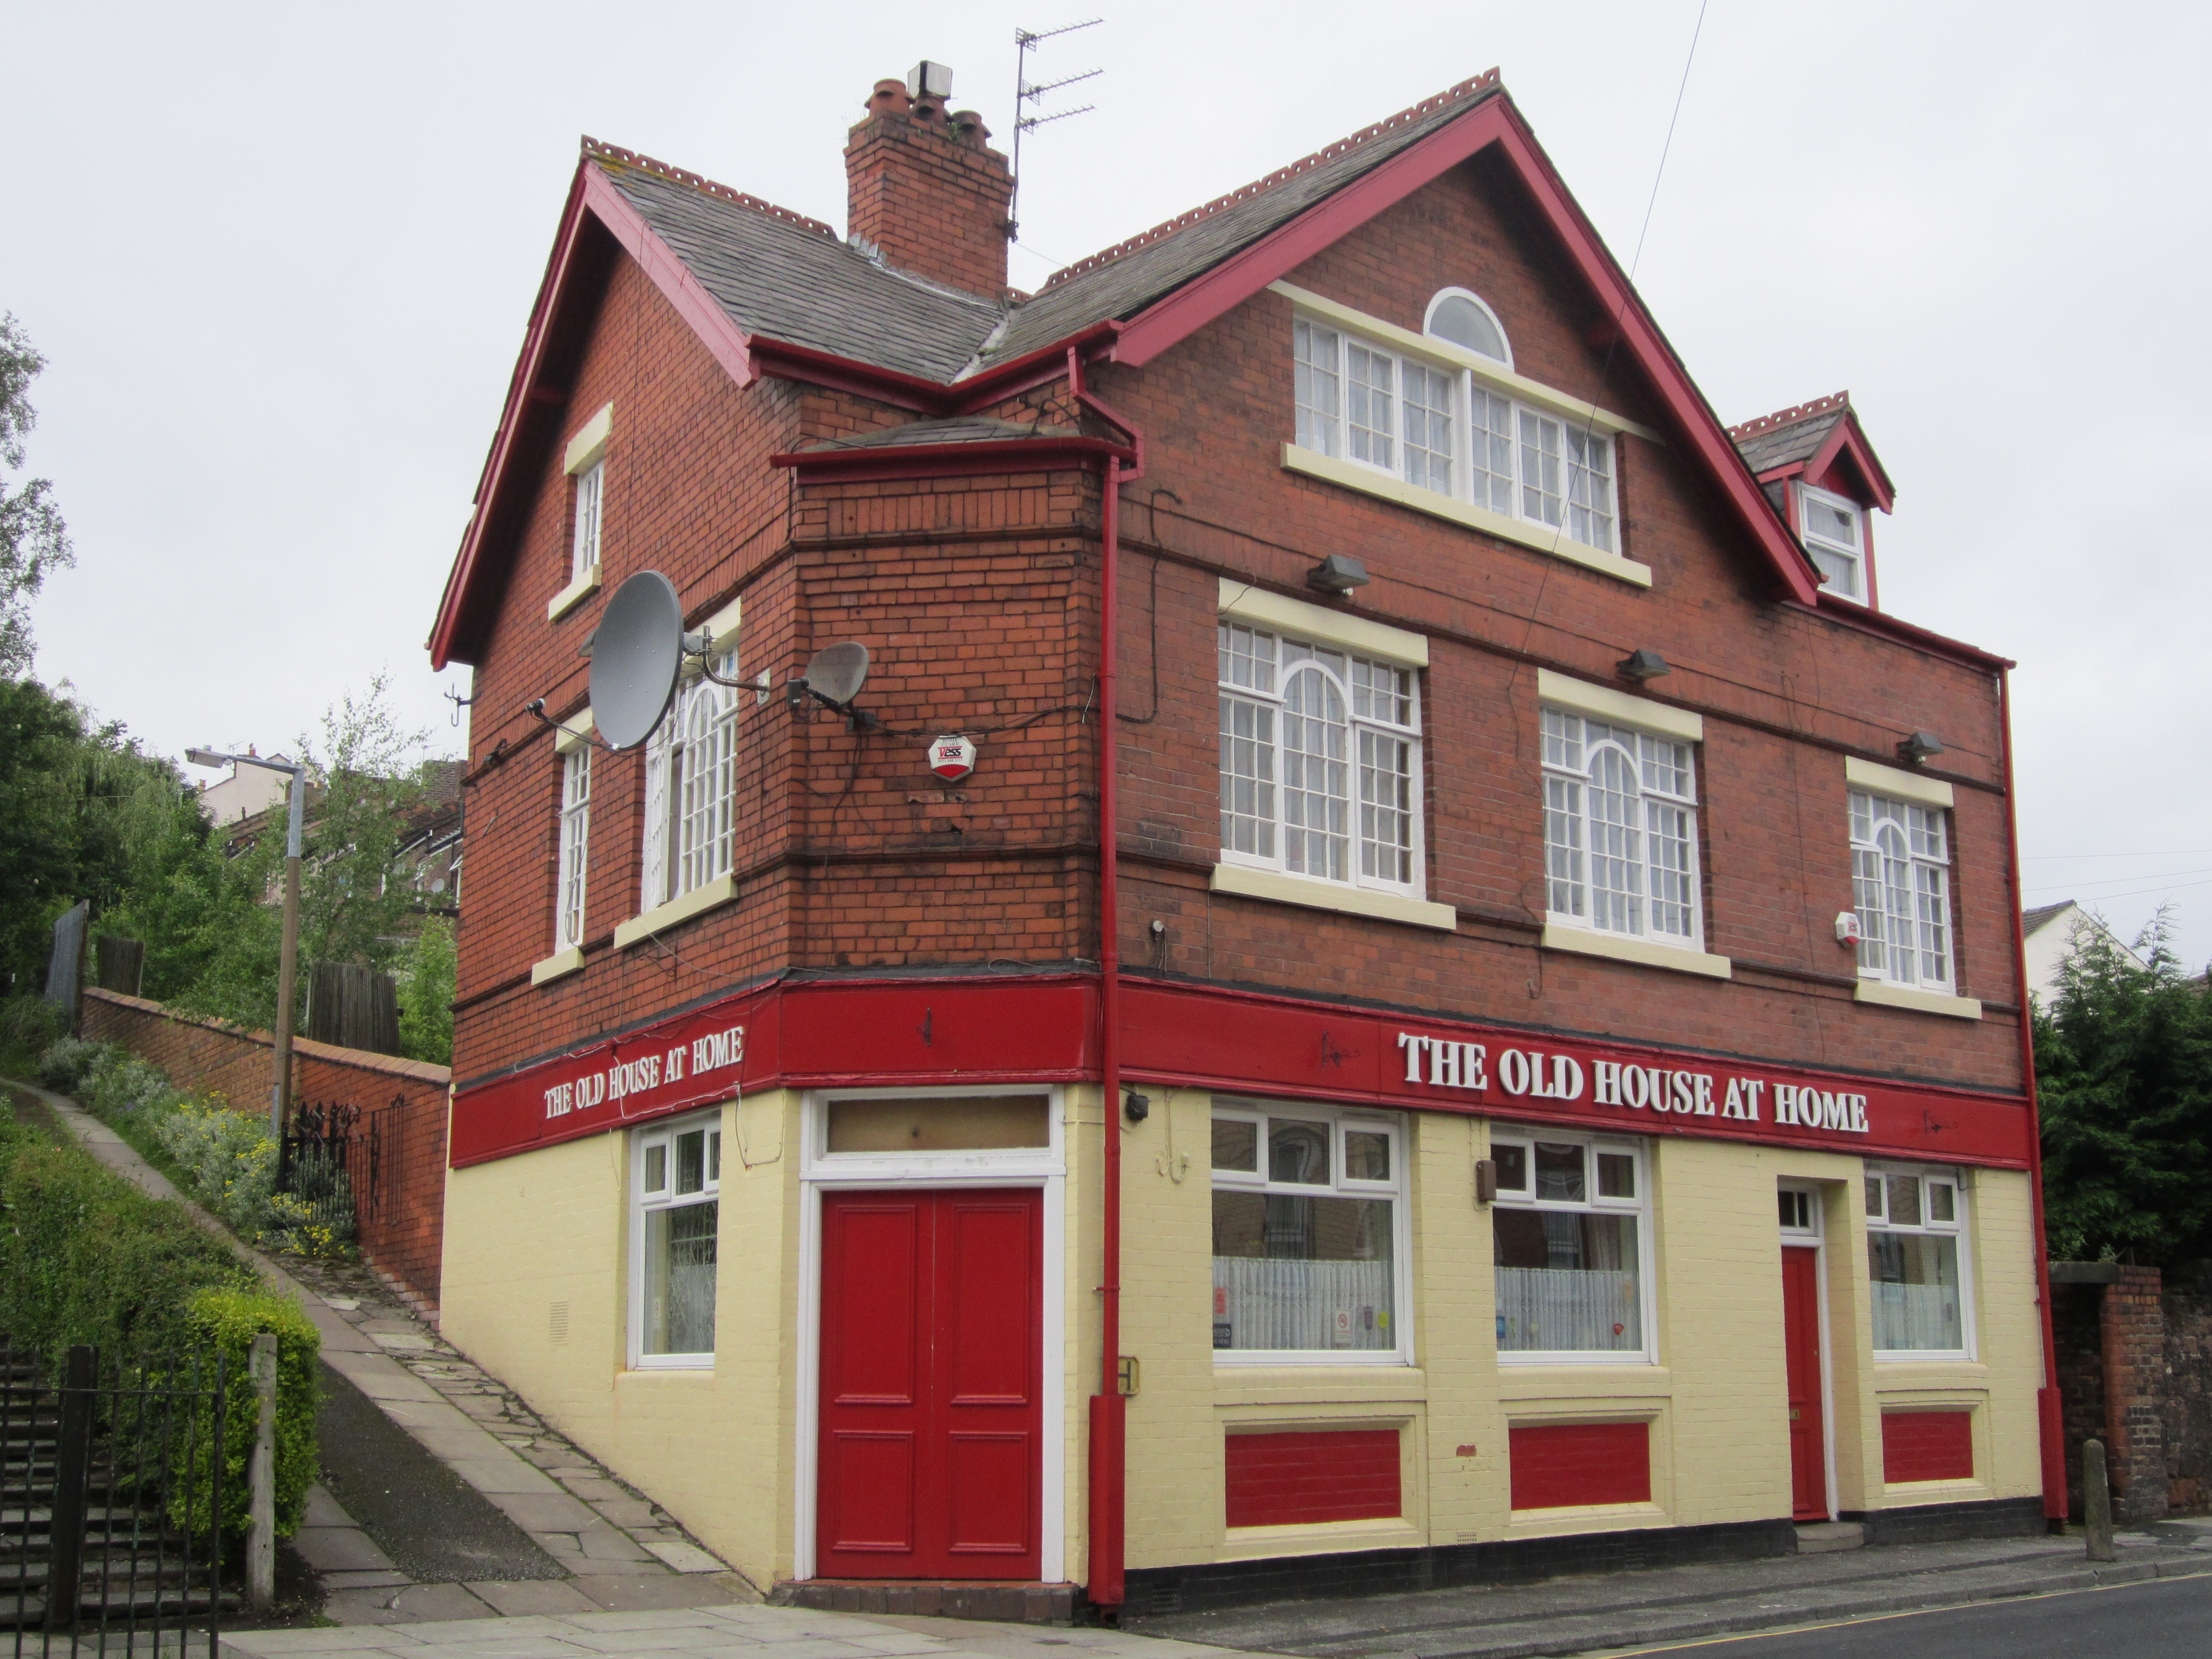 File:The Old House At Home Pub, Birkenhead